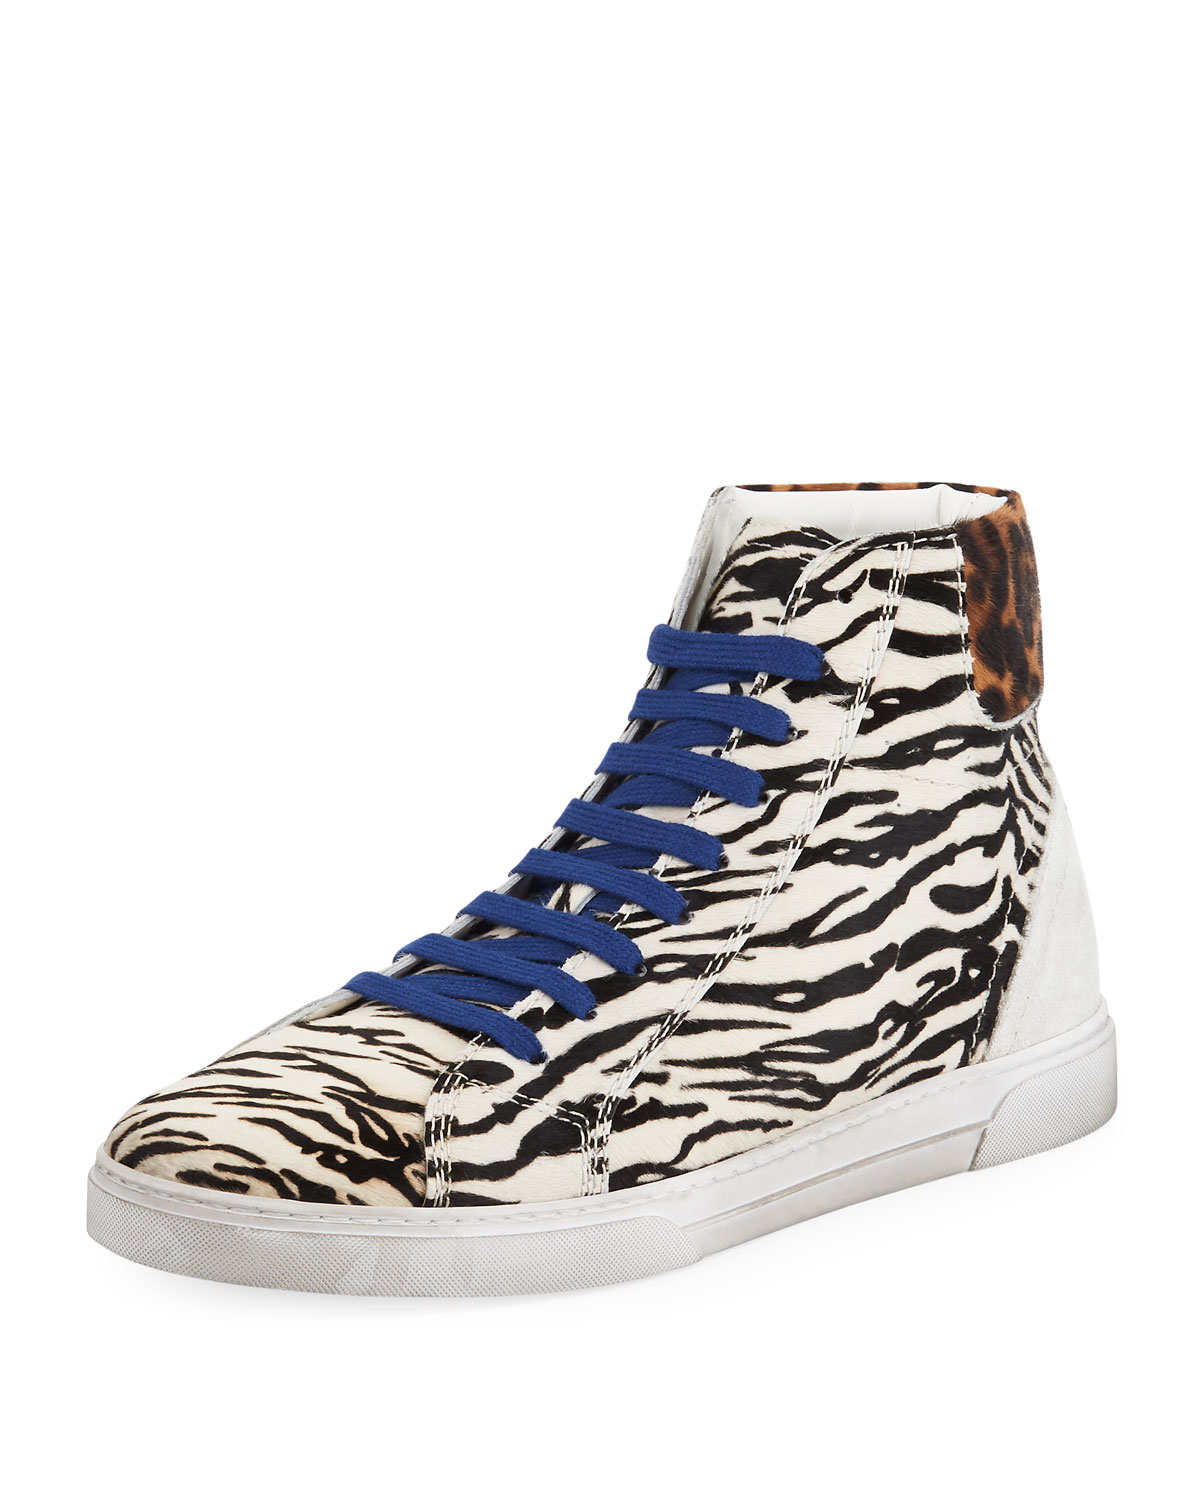 Men's Joe Chess Animal-Print Leather High-Top Sneakers